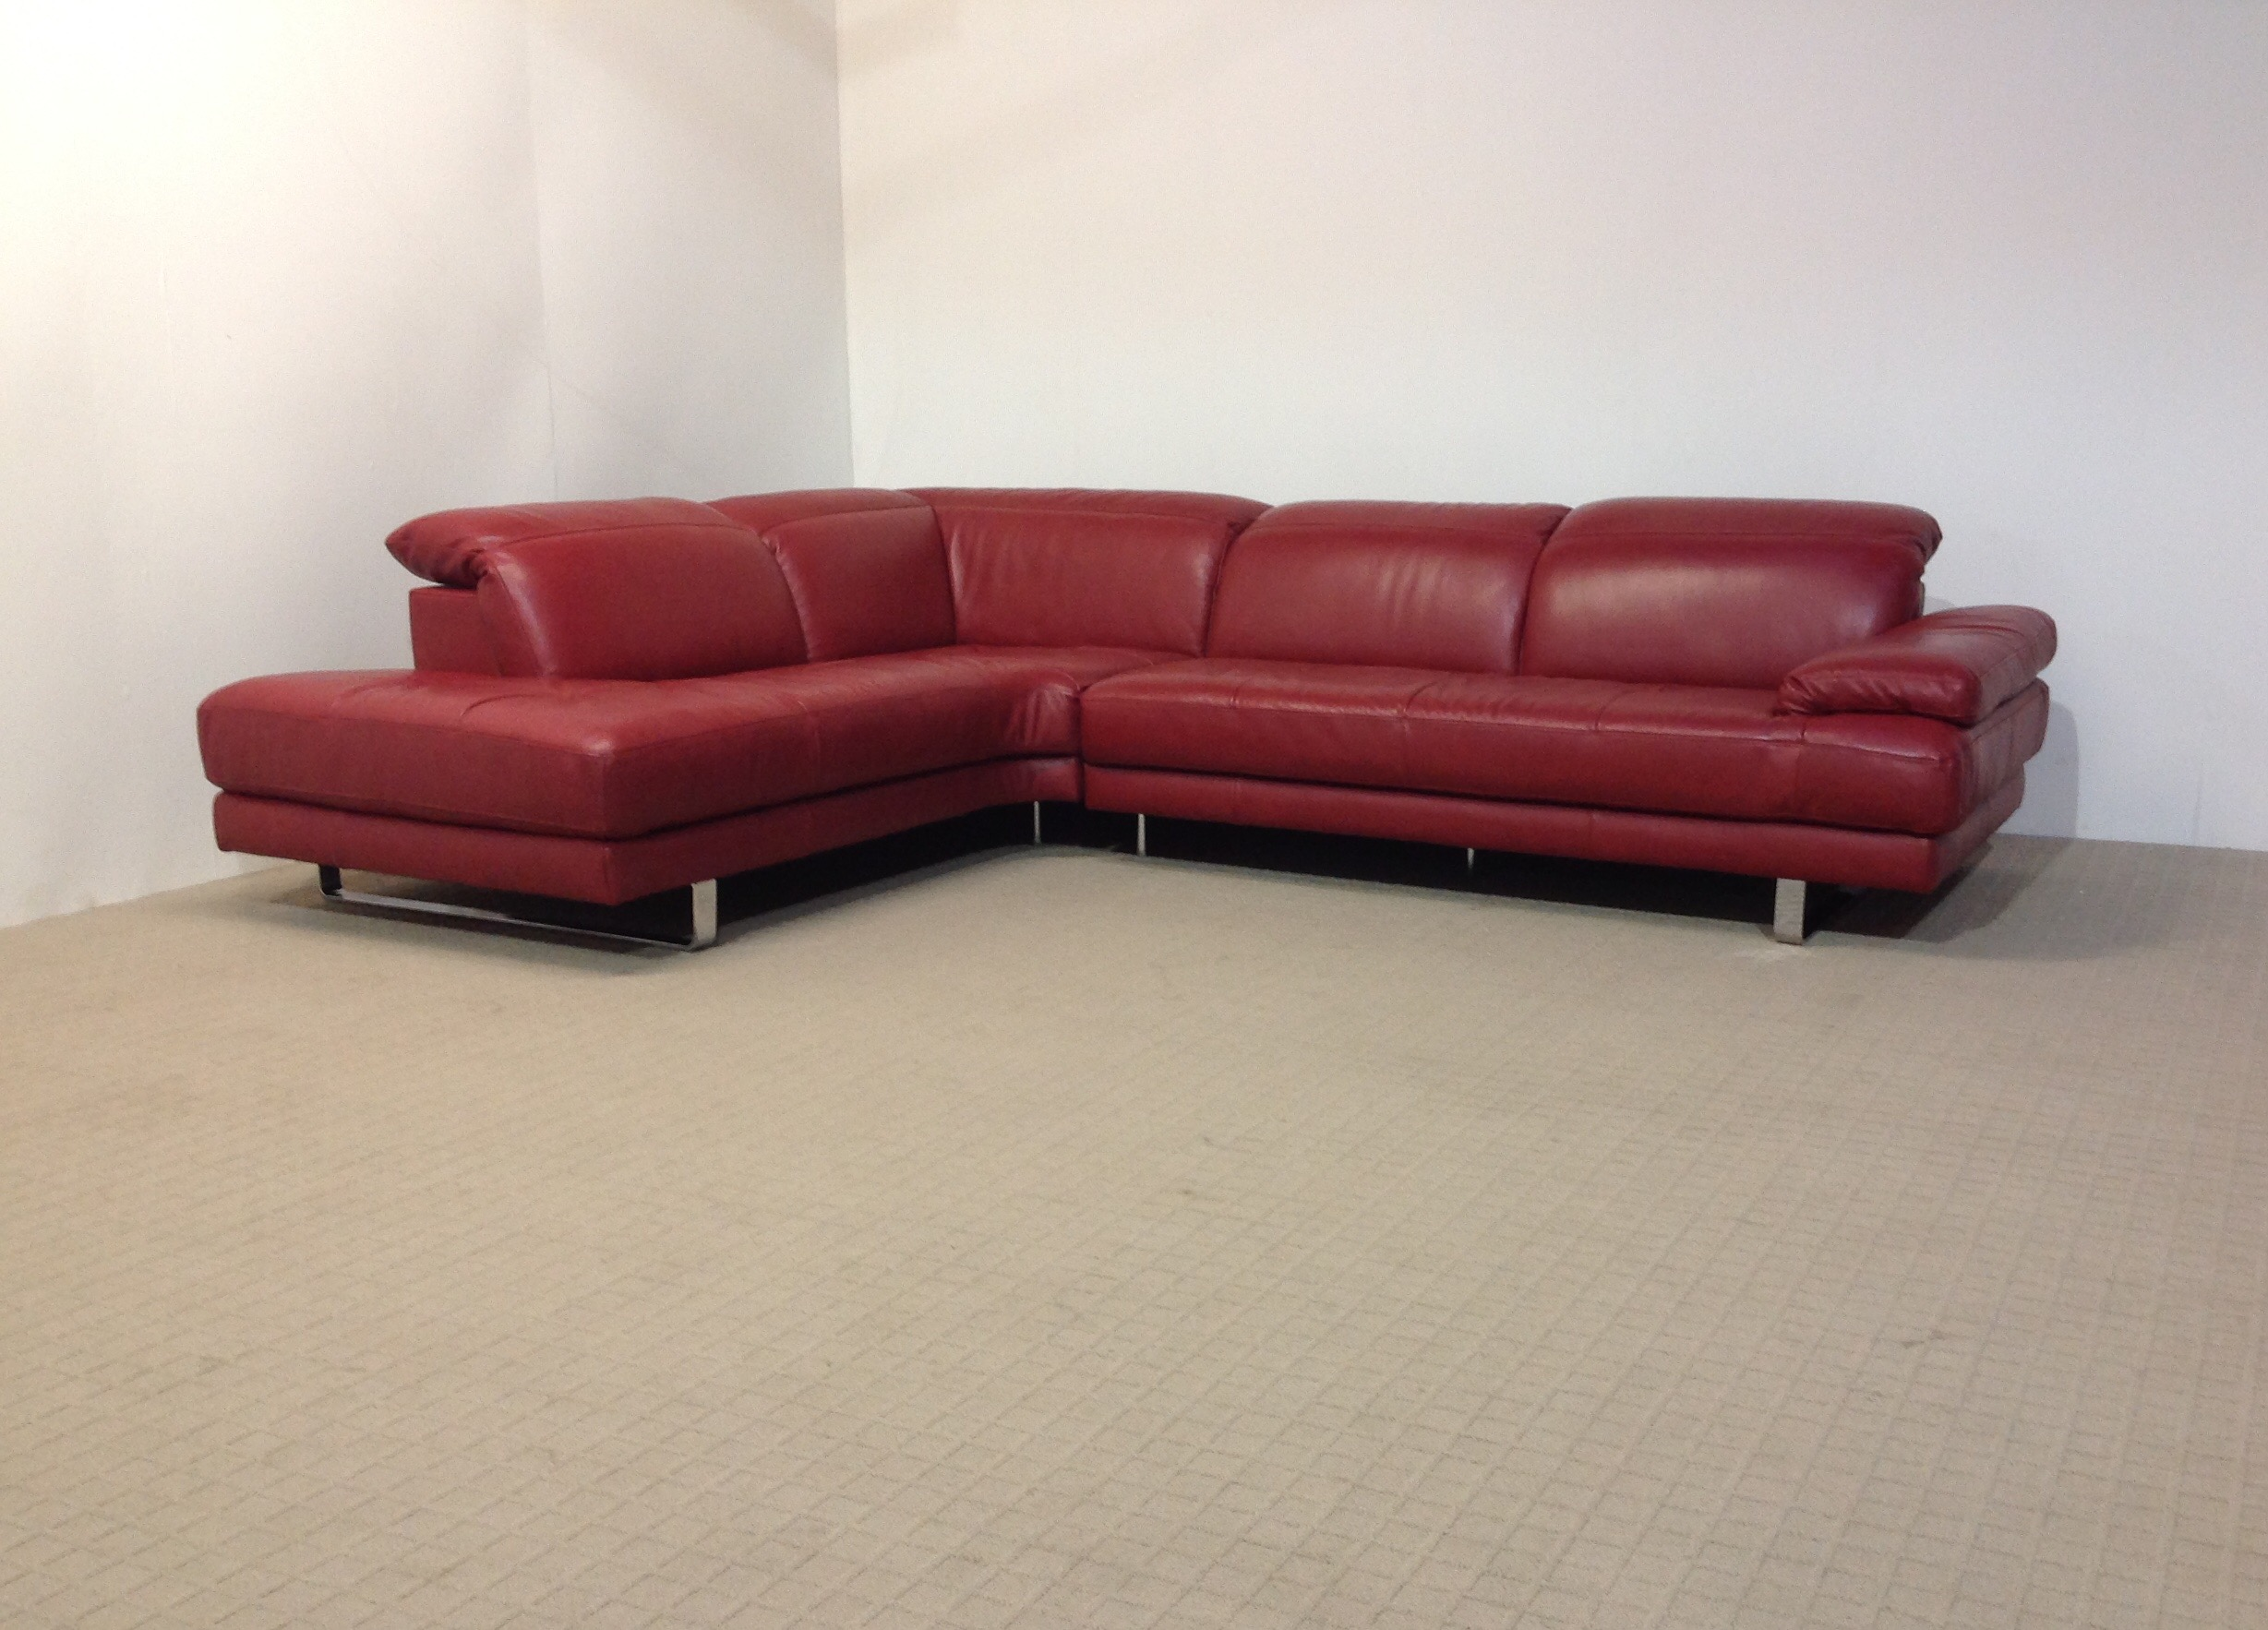 natuzzi red leather sofa and chair waterproof pet protector cover edition metropolitan ruby corner